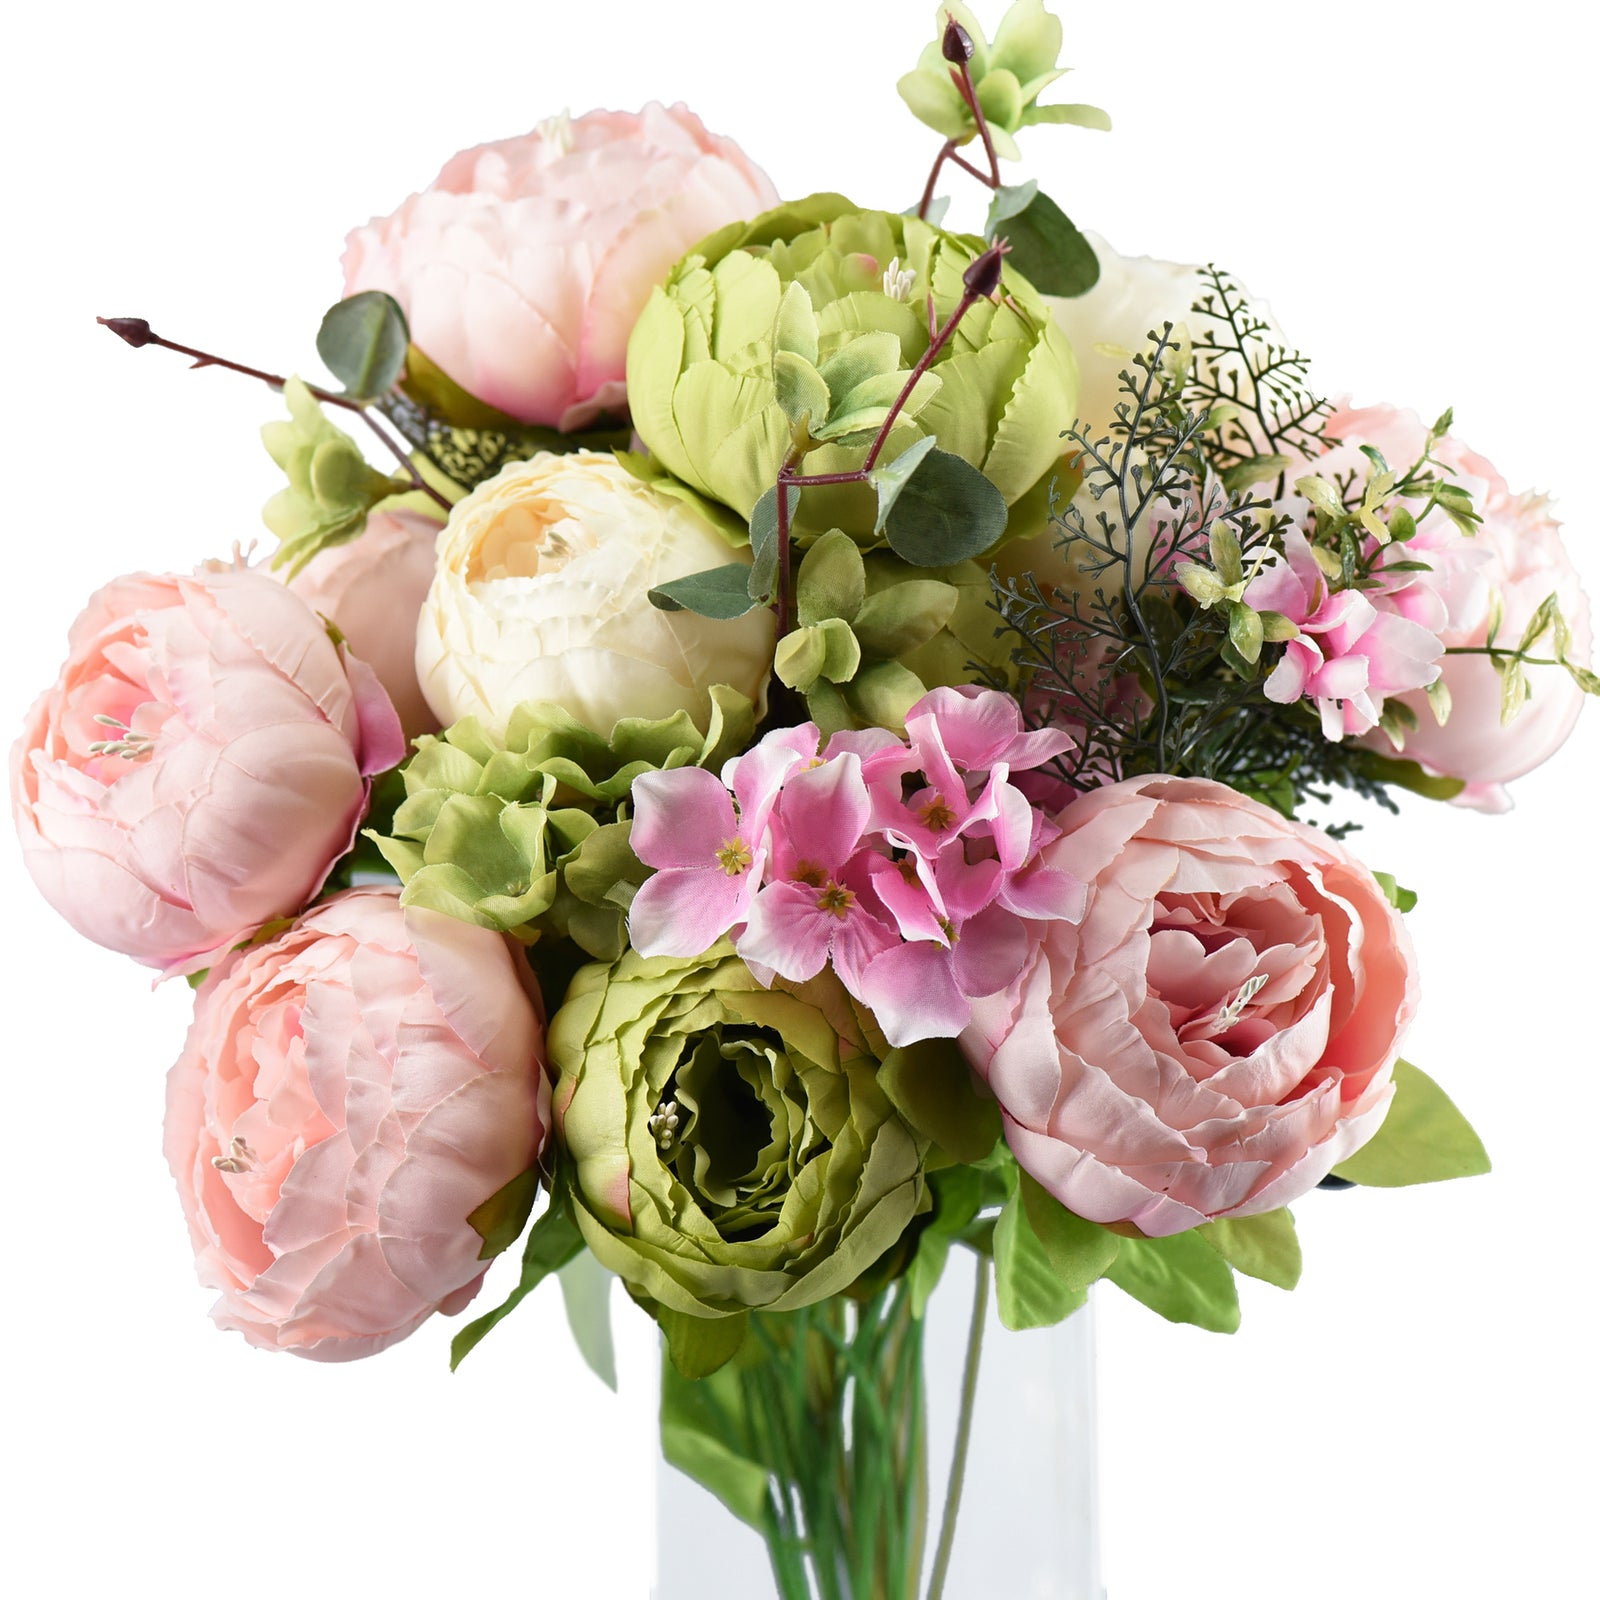 FiveSeasonStuff 2 Bundles (Spring Waltz) Peonies Artificial Flower Bouquet